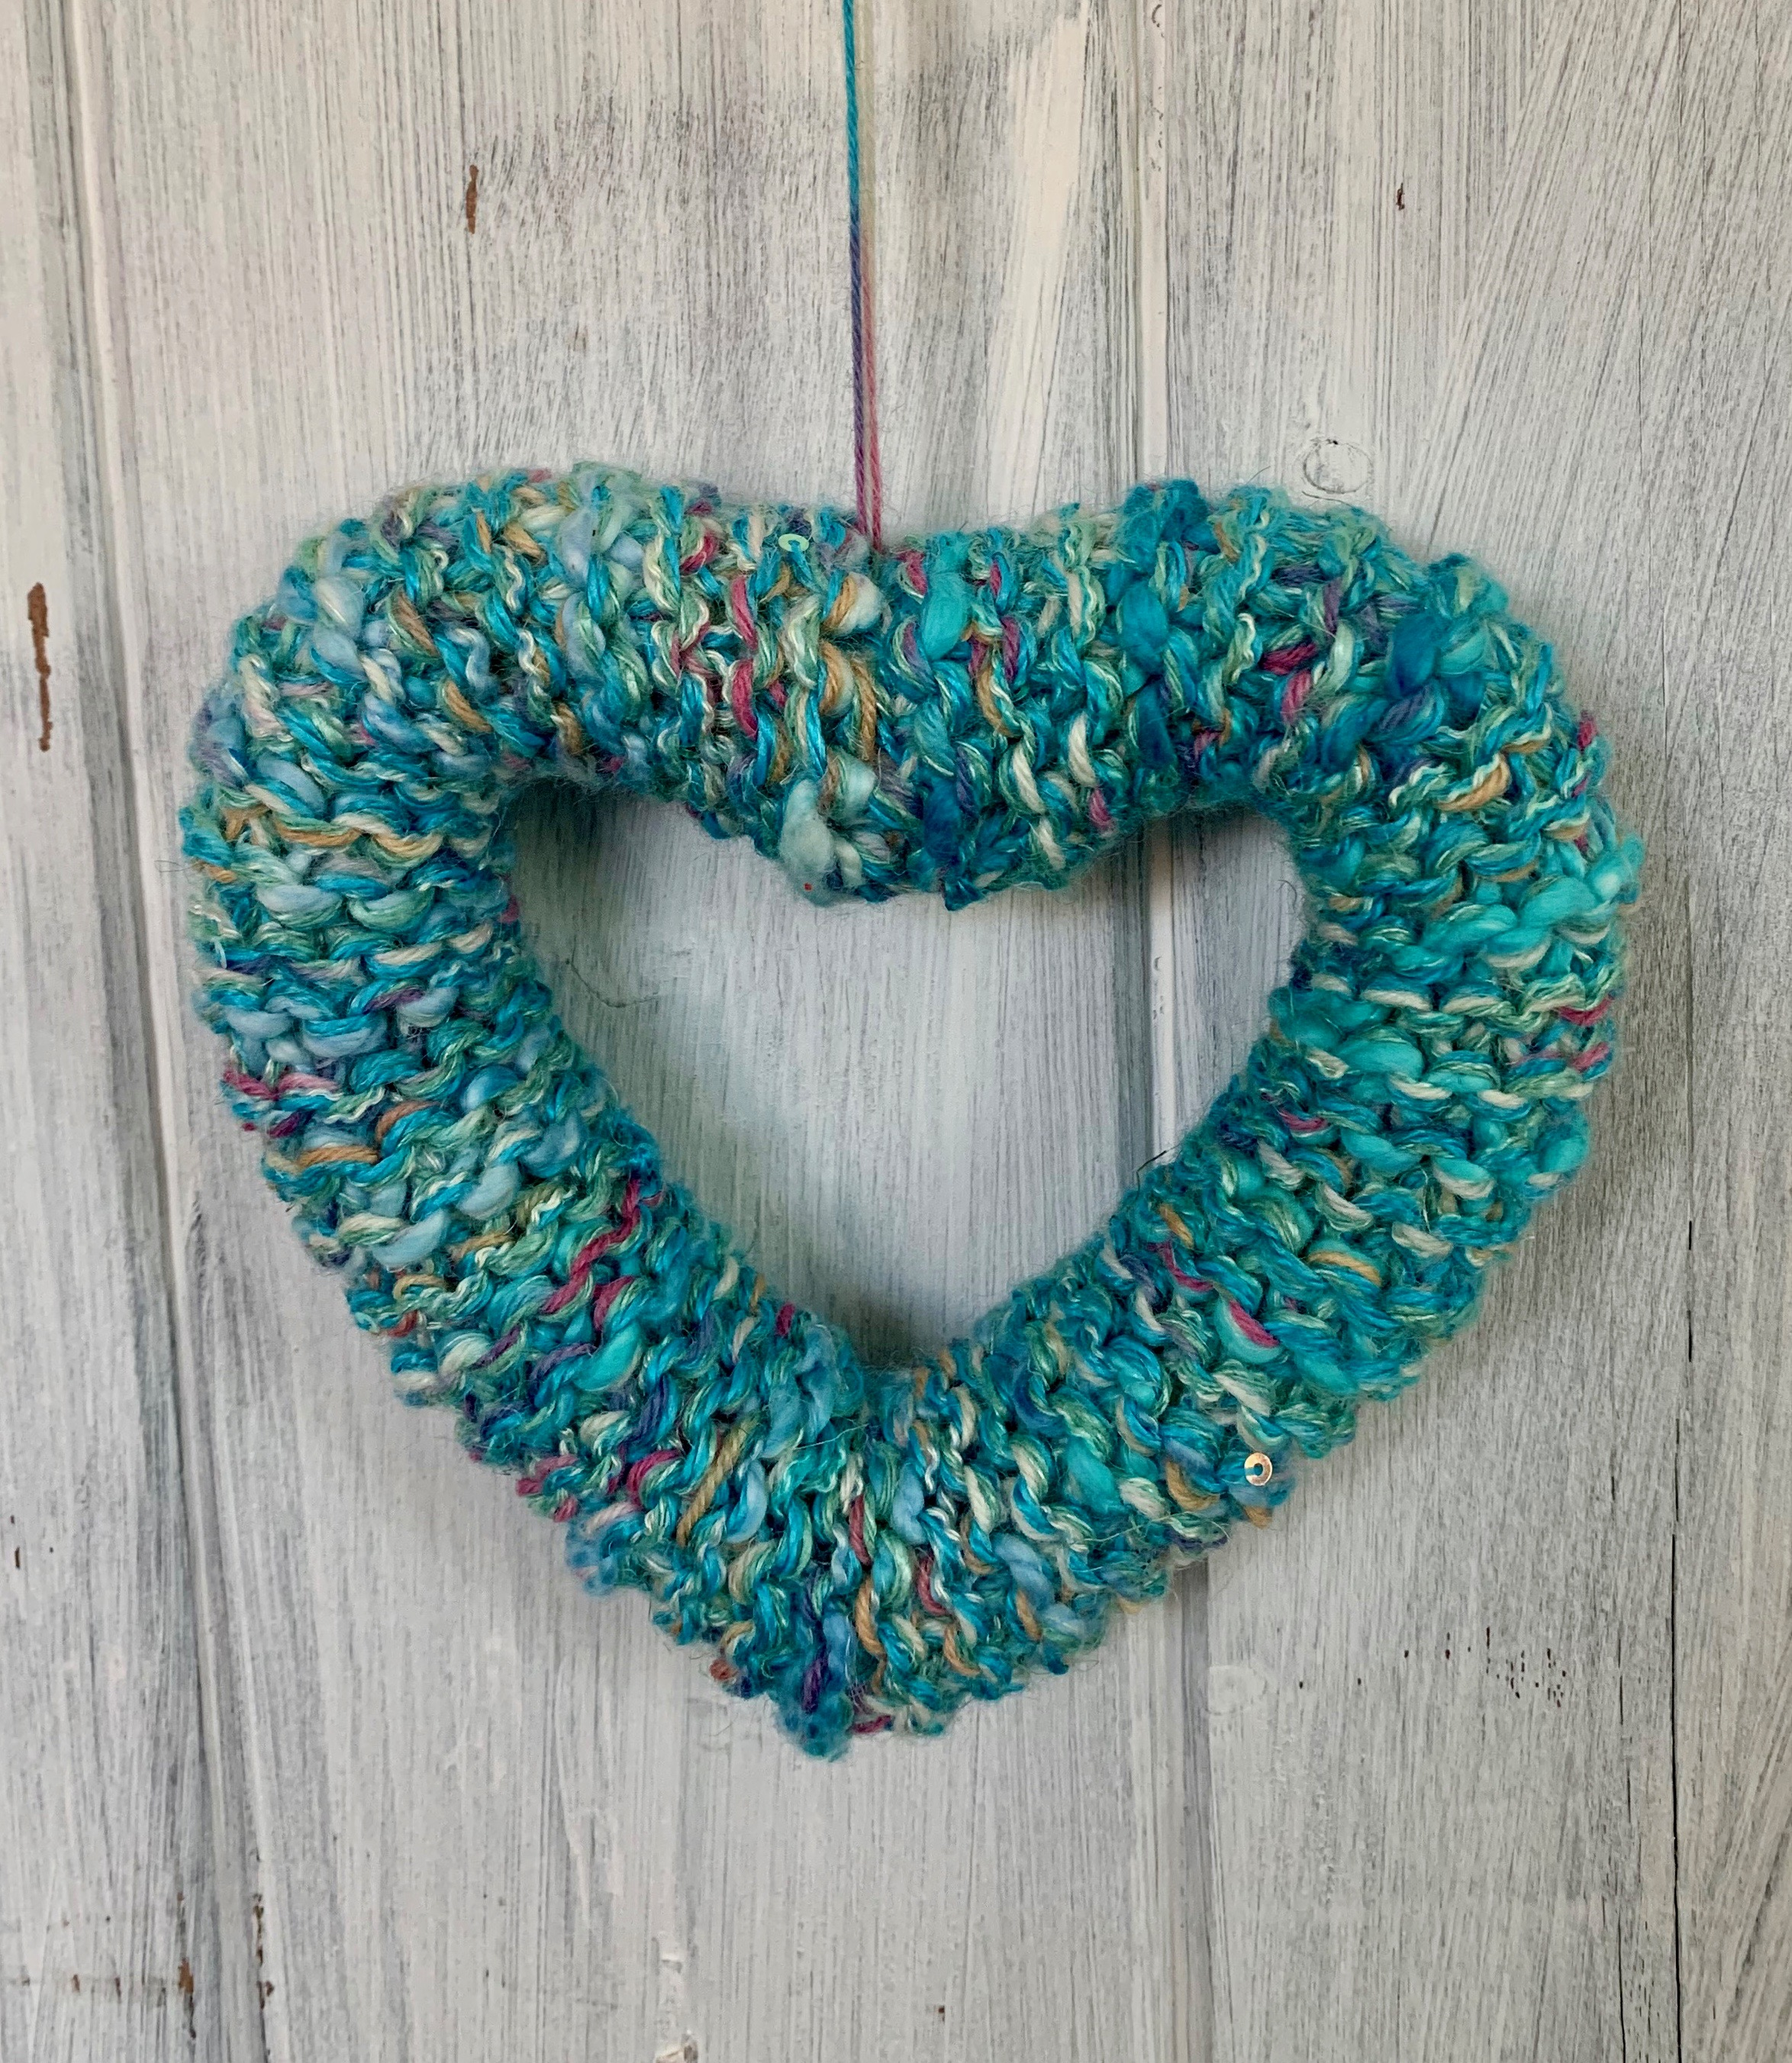 Mixed Blue and Turquoise Knitted Heart